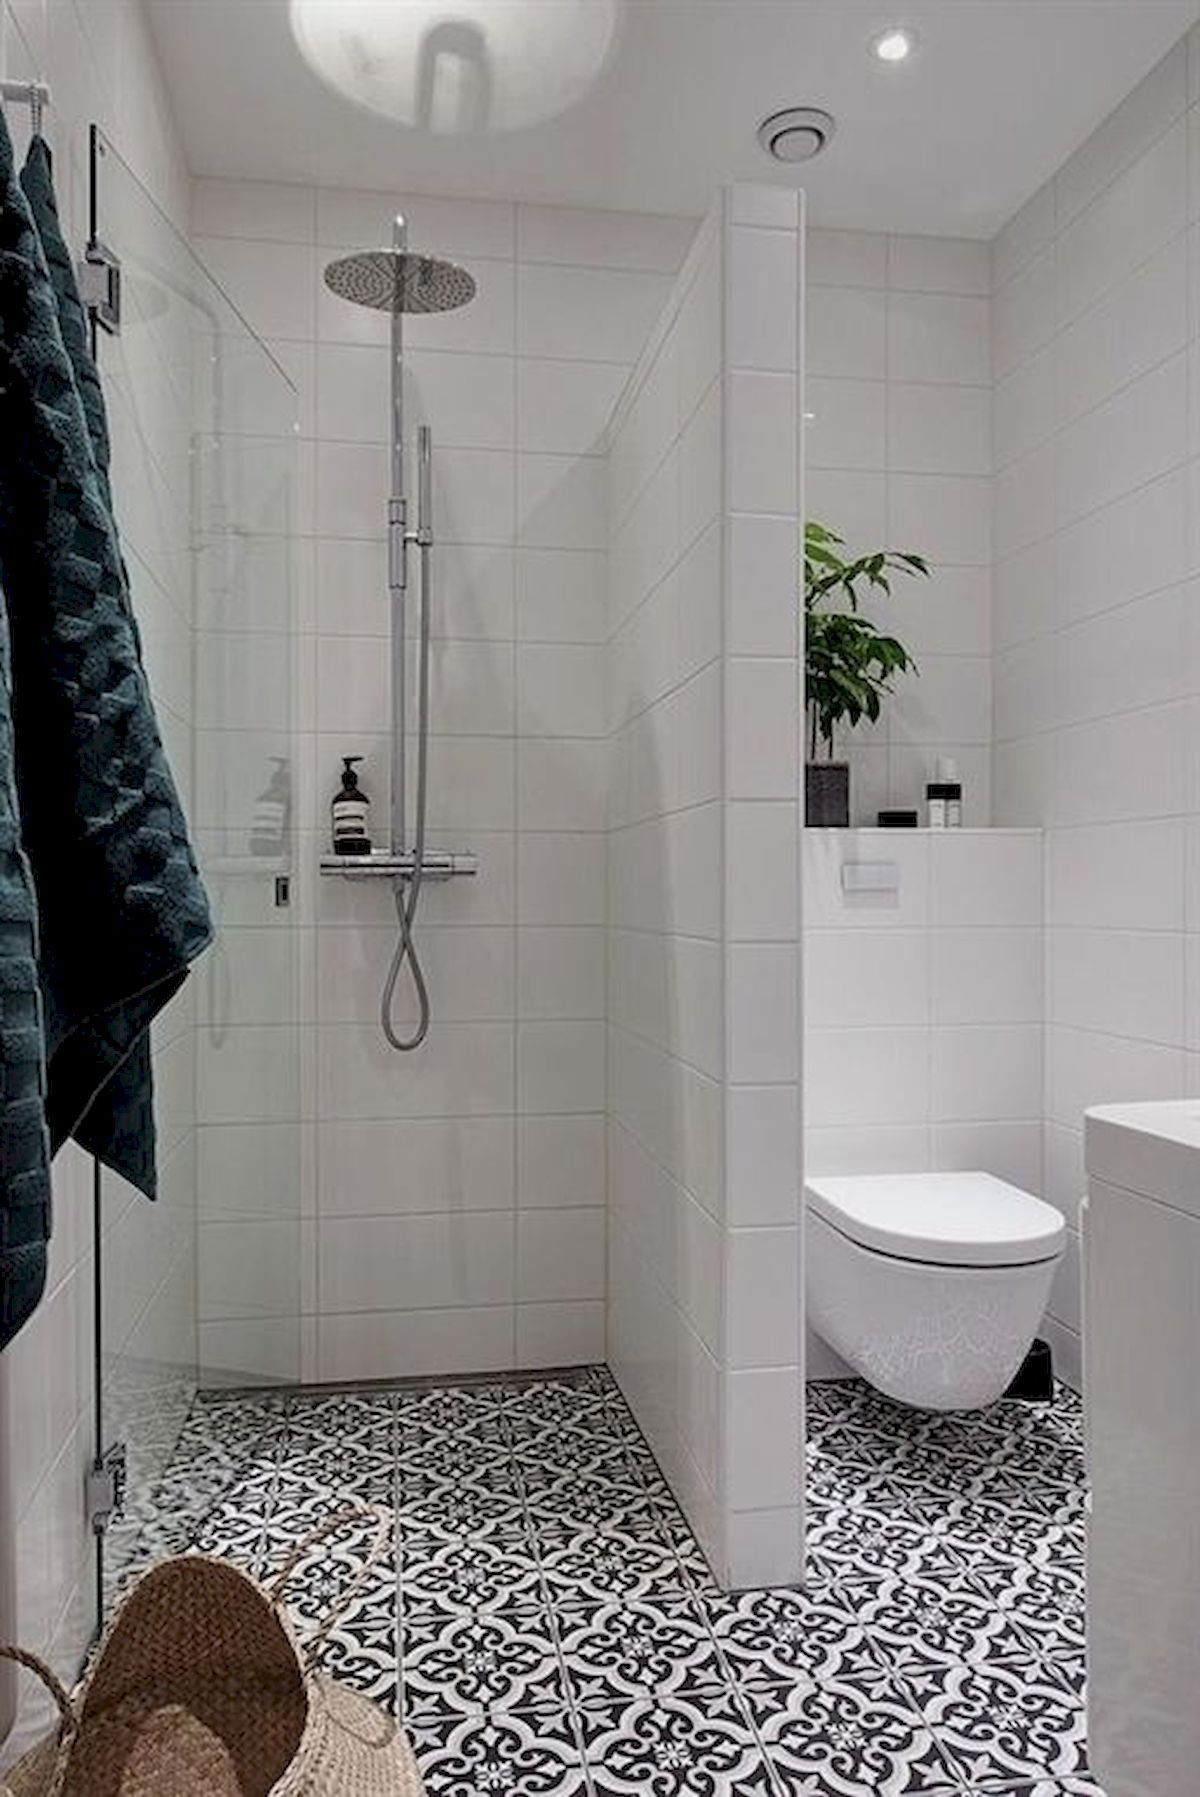 30 Stunning Small Bathroom Ideas On A Budget With Images Small